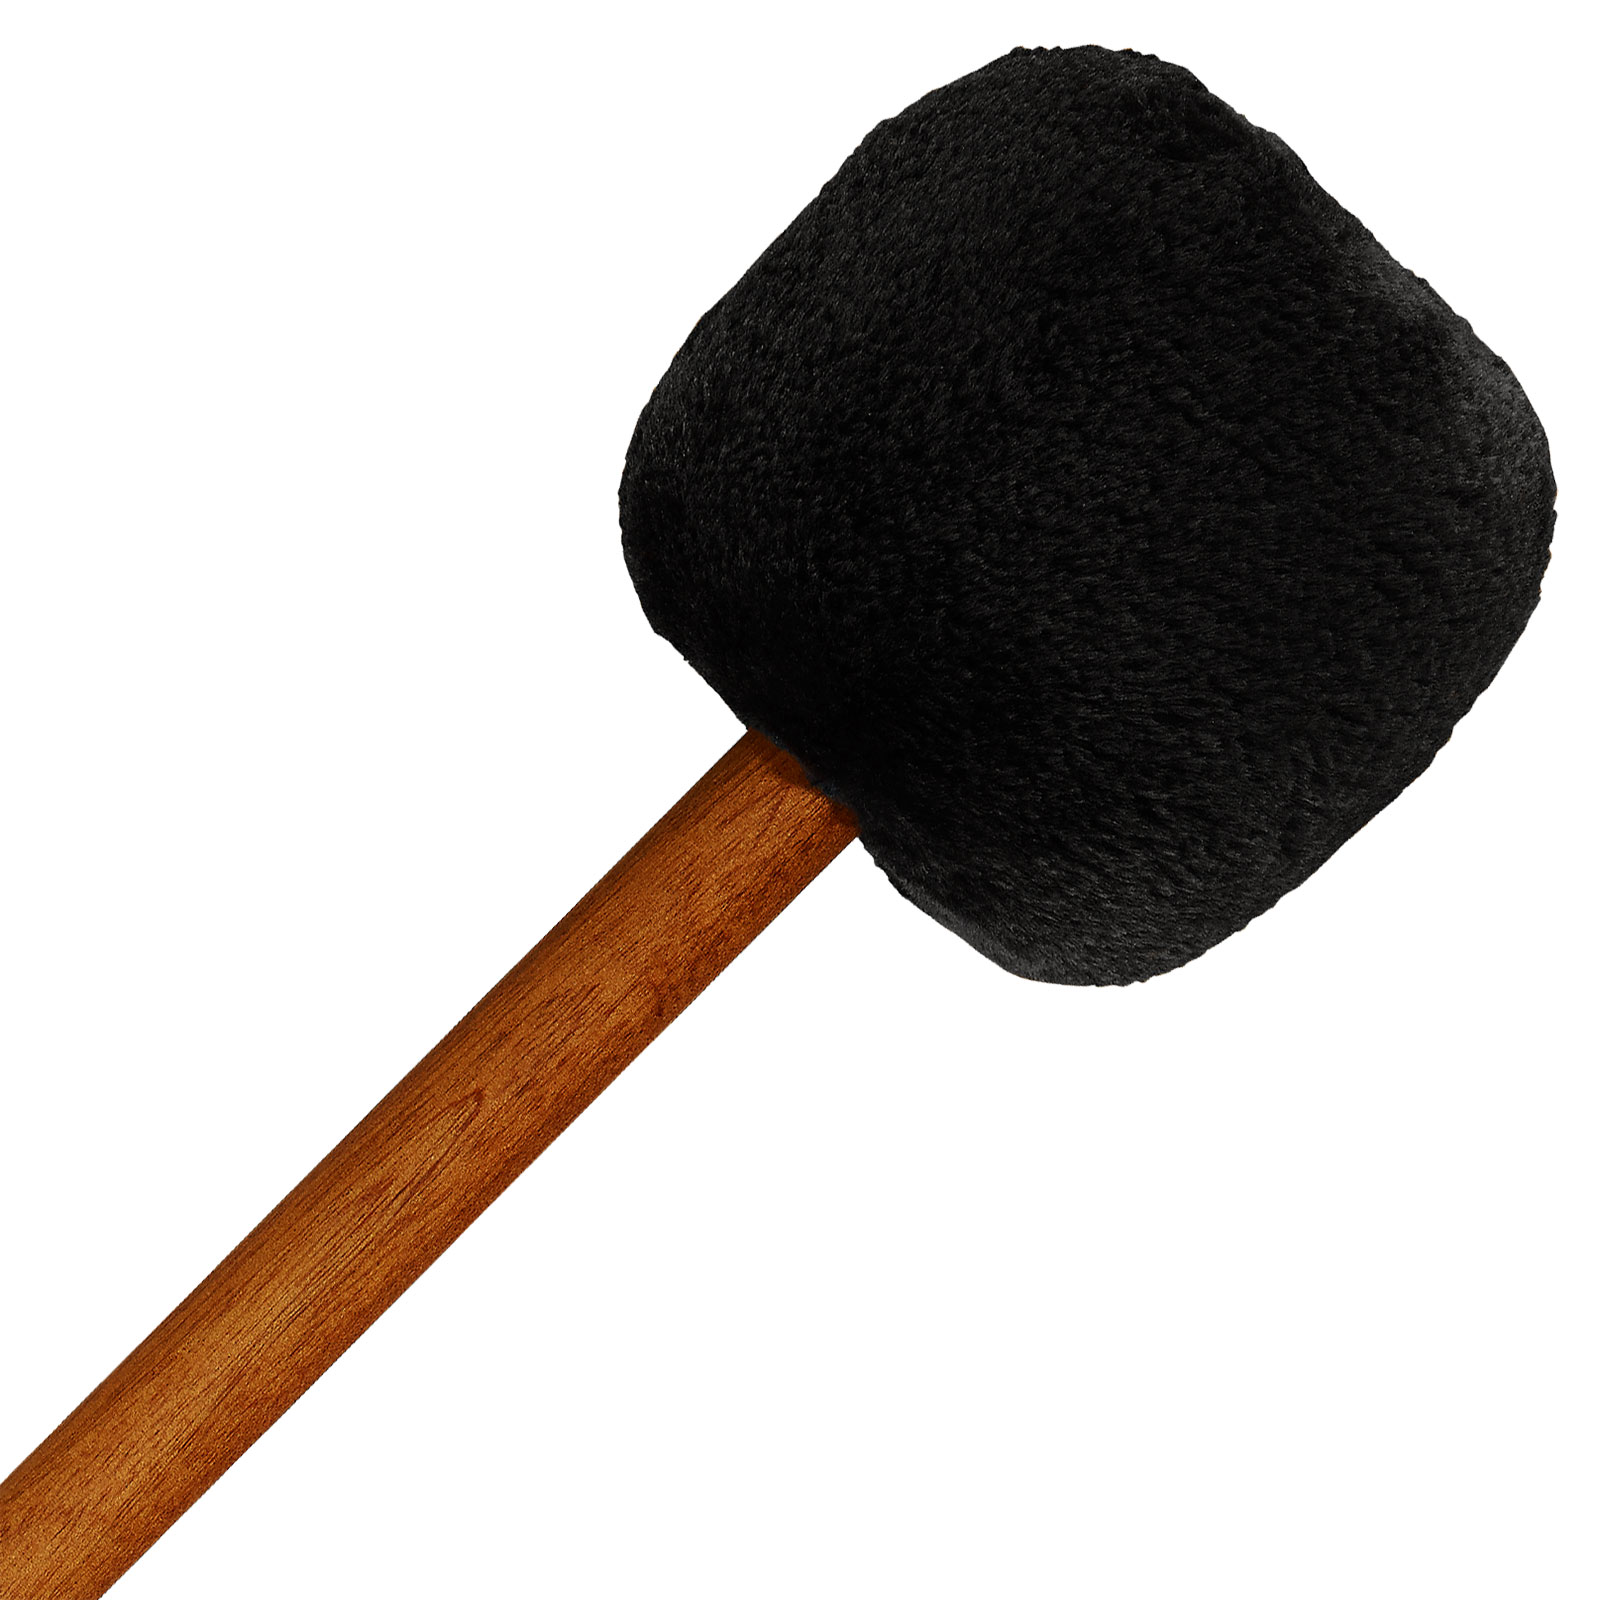 Meinl Large Gong (Tam-Tam) Mallet